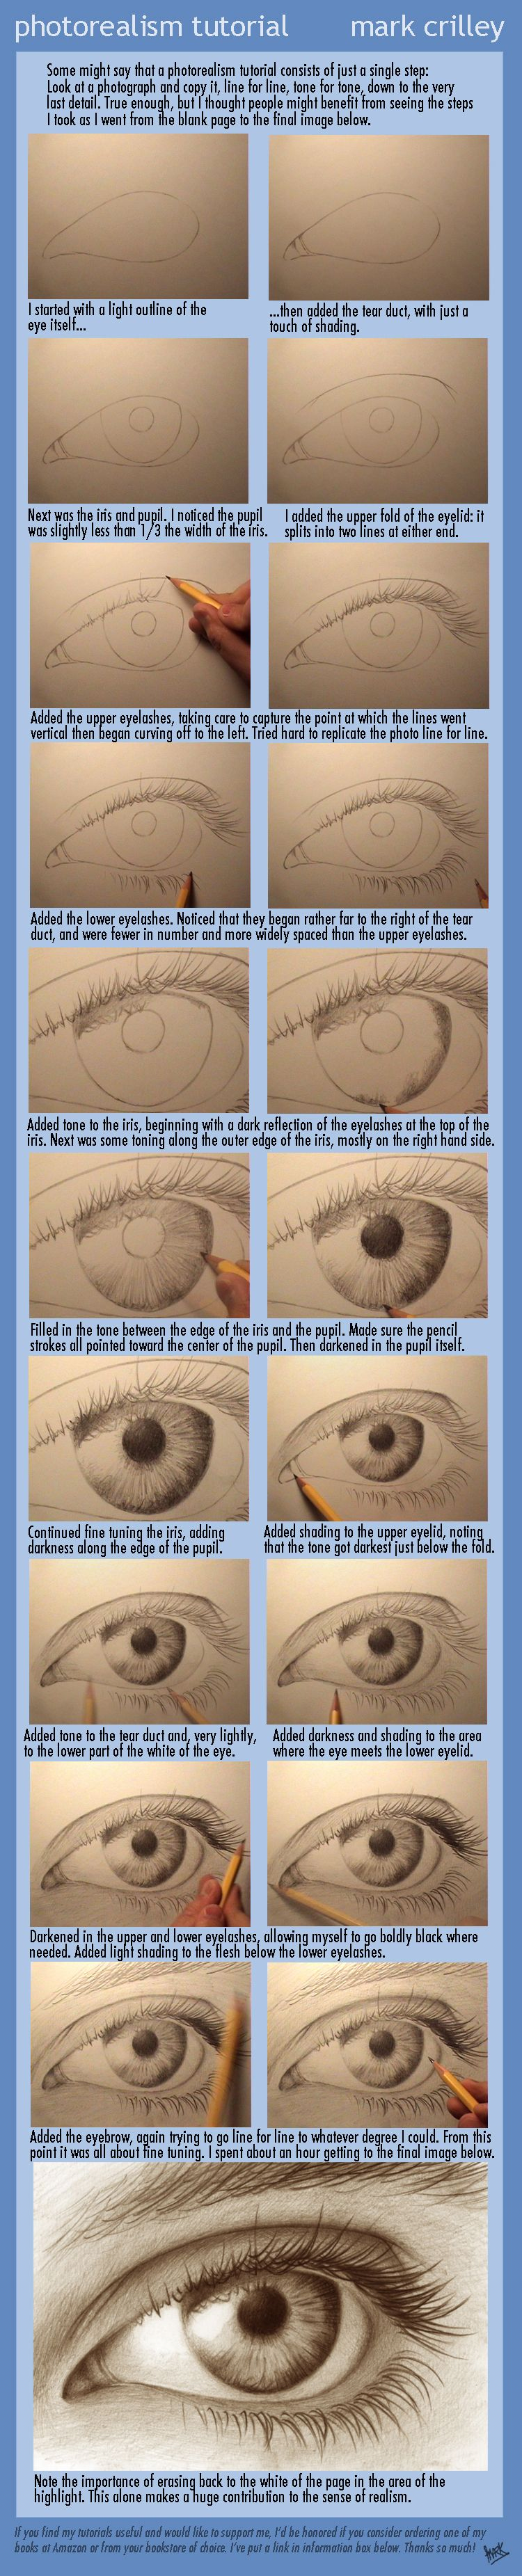 Photorealism Tutorial  - How to Draw an Eye by ~markcrilley on deviantART.  Mark is an amazing illustrator and his tutorials are great. This is the correct link to his original posting. http://markcrilley.deviantart.com/art/Photorealism-Tutorial-160594429